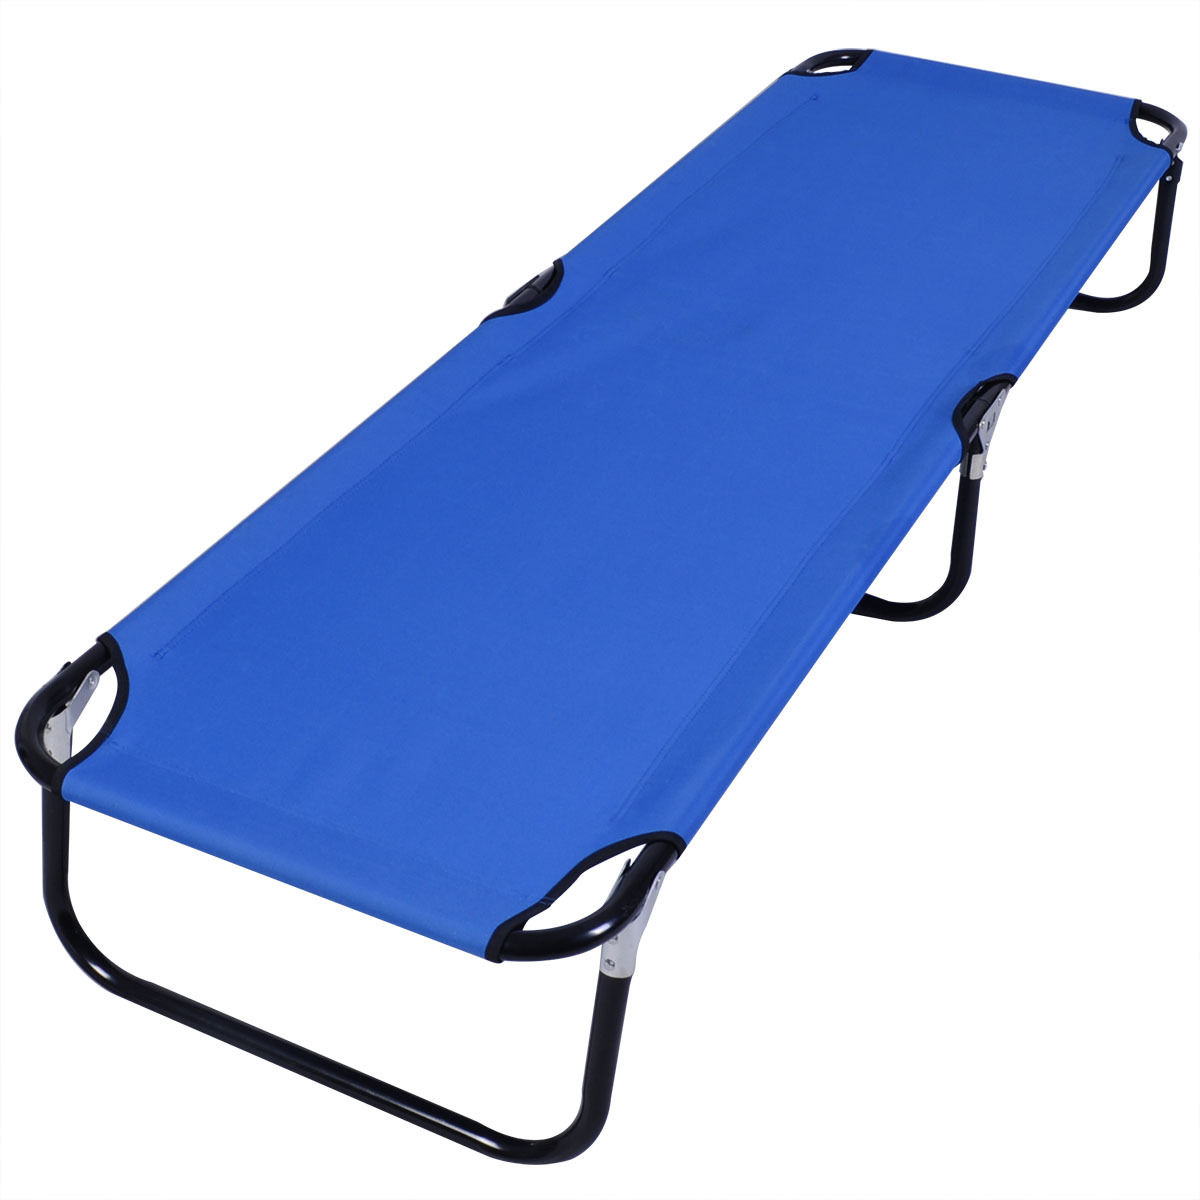 Gymax Blue Folding Camping Bed Outdoor Military Cot Sleeping